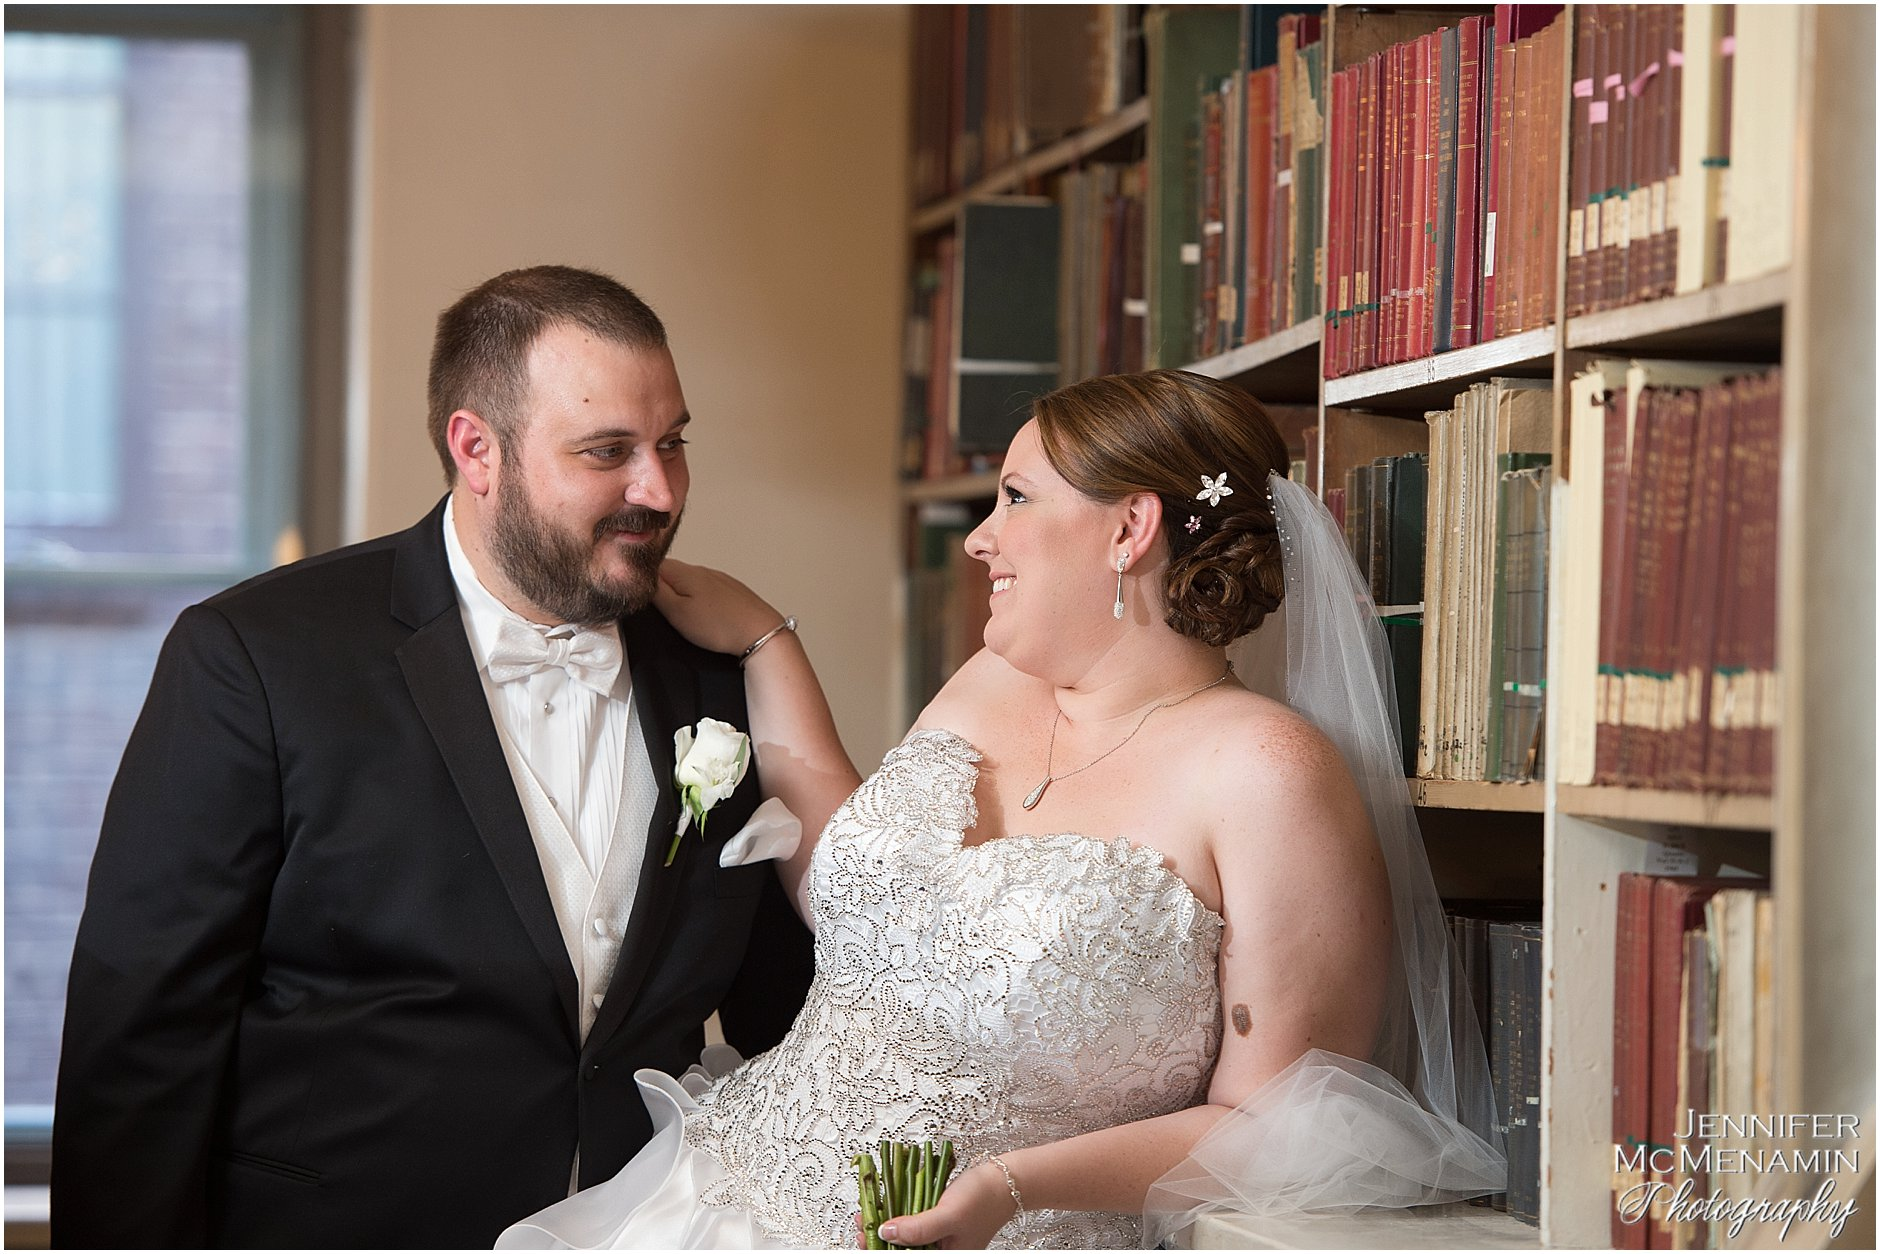 008-KinzlerShaull_01187_Jennifer-McMenamin-Photography-Peabody-Library-wedding